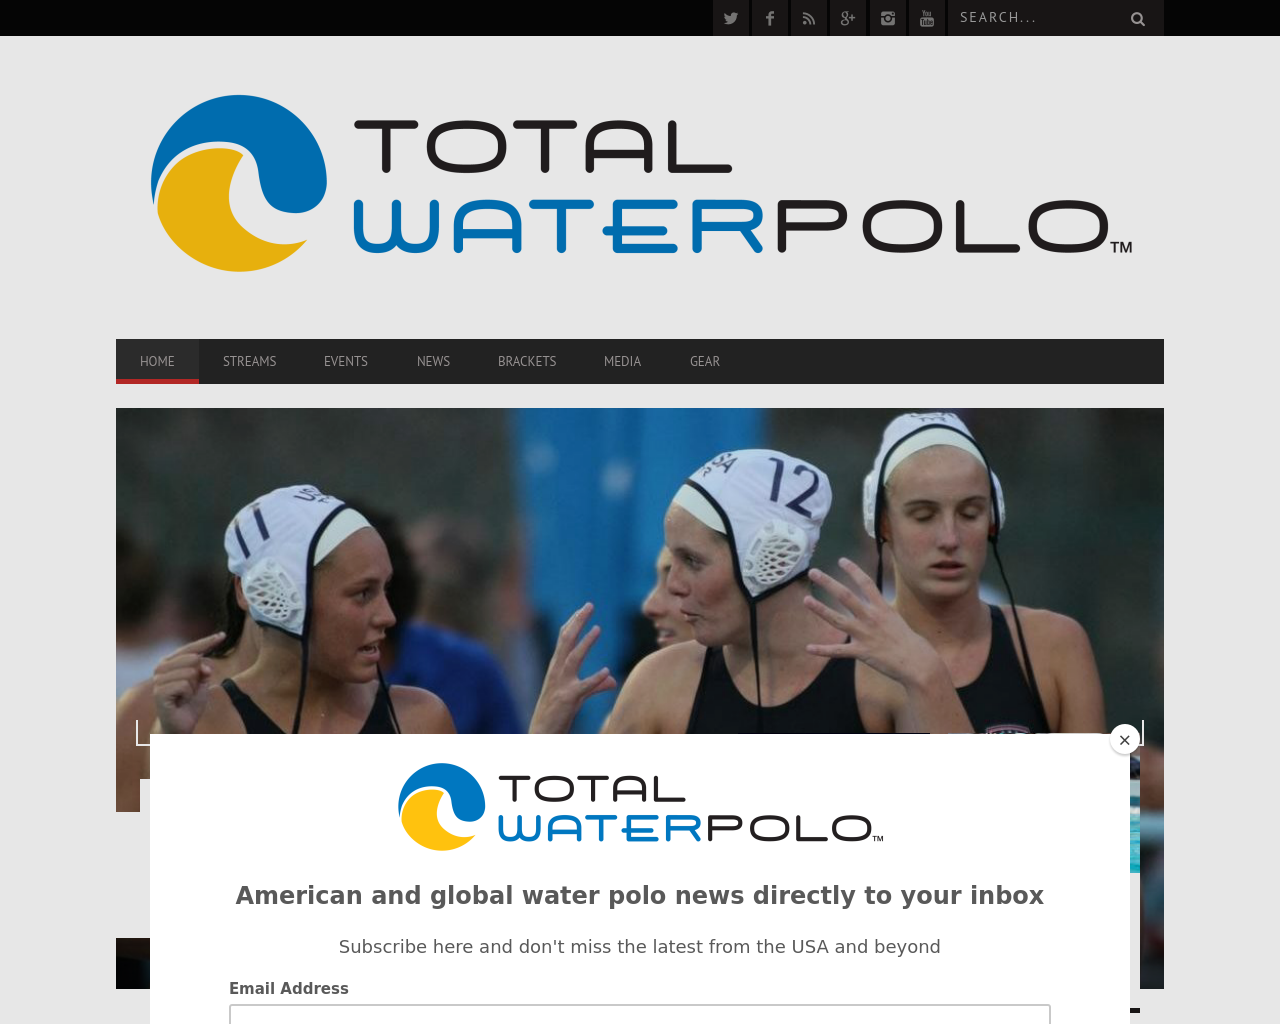 Total-Waterpolo-Advertising-Reviews-Pricing